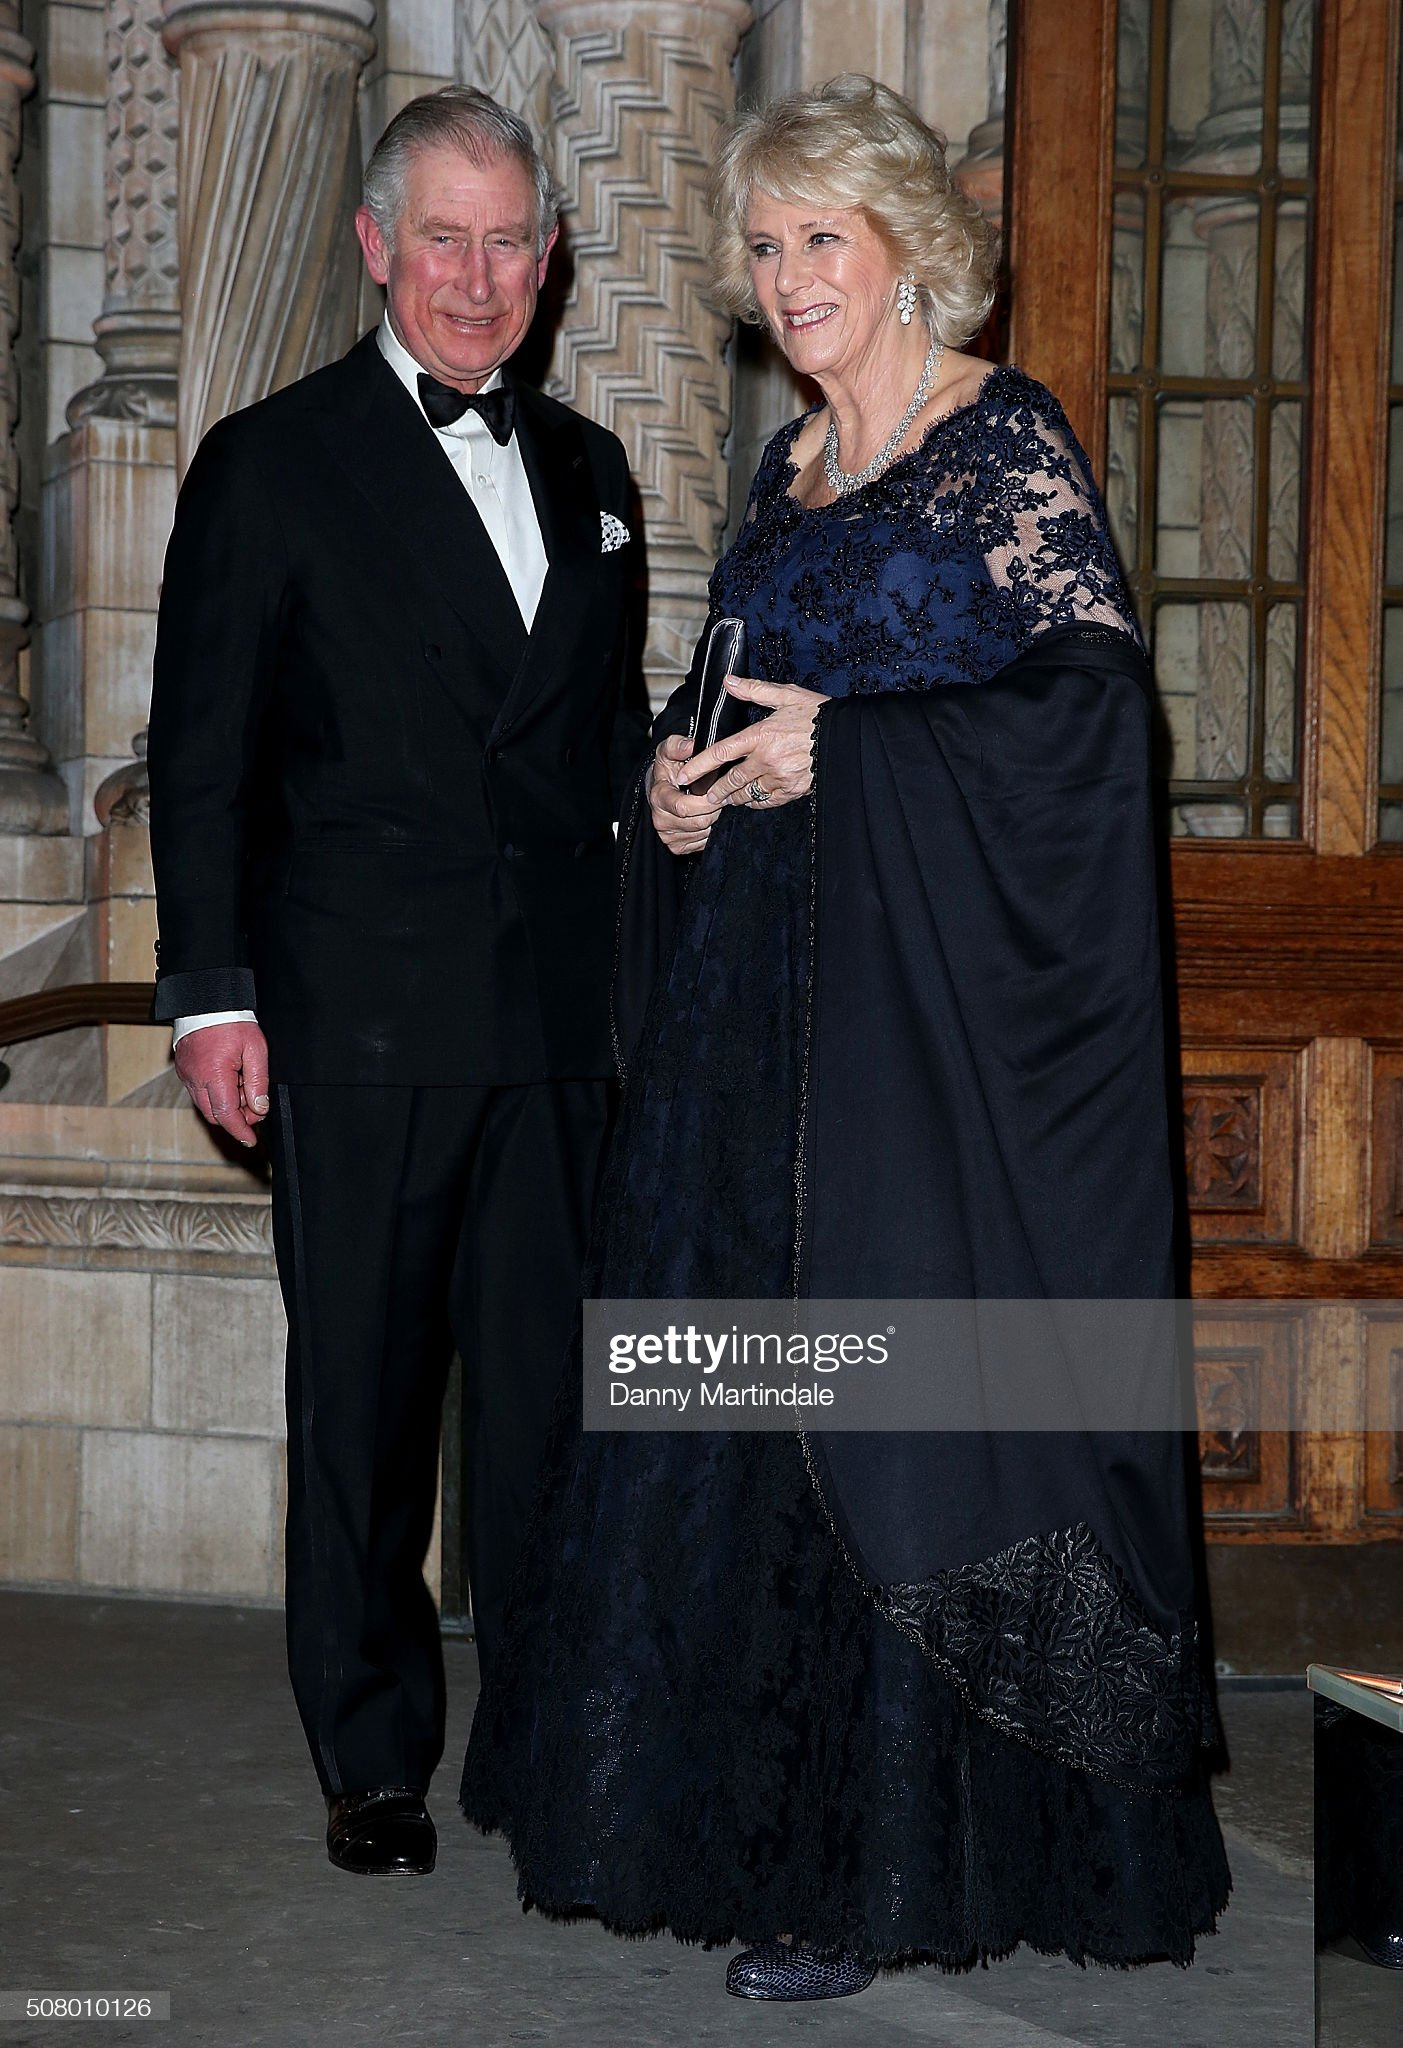 The Prince Of Wales And Duchess Of Cornwall Attend A Reception And Dinner For Supporters Of The British Asian Trust : News Photo